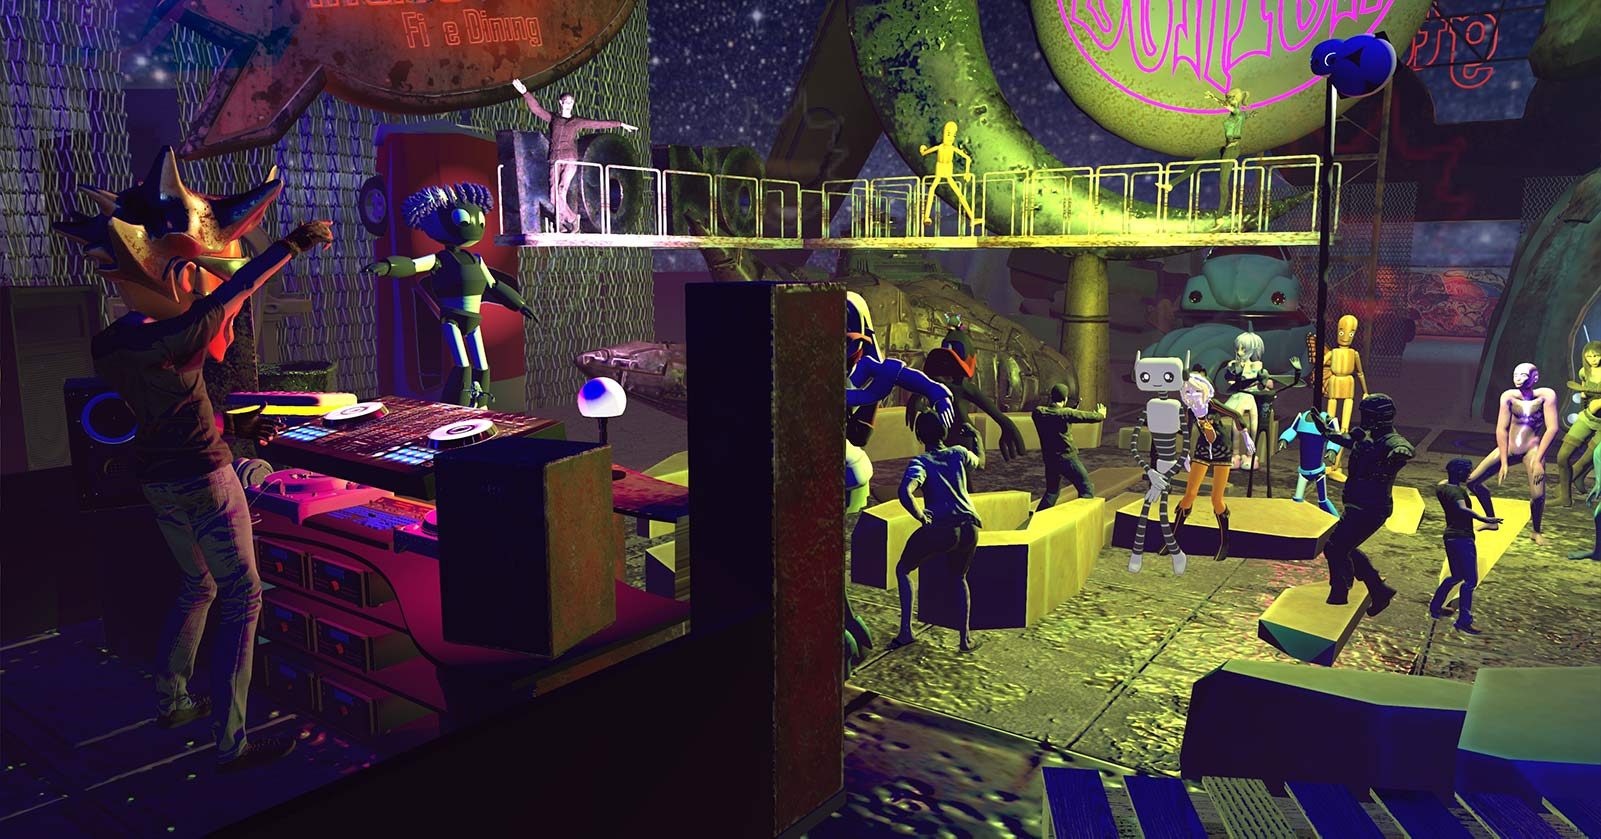 A scene from the Rust virtual reality nightclub in High Fidelity.